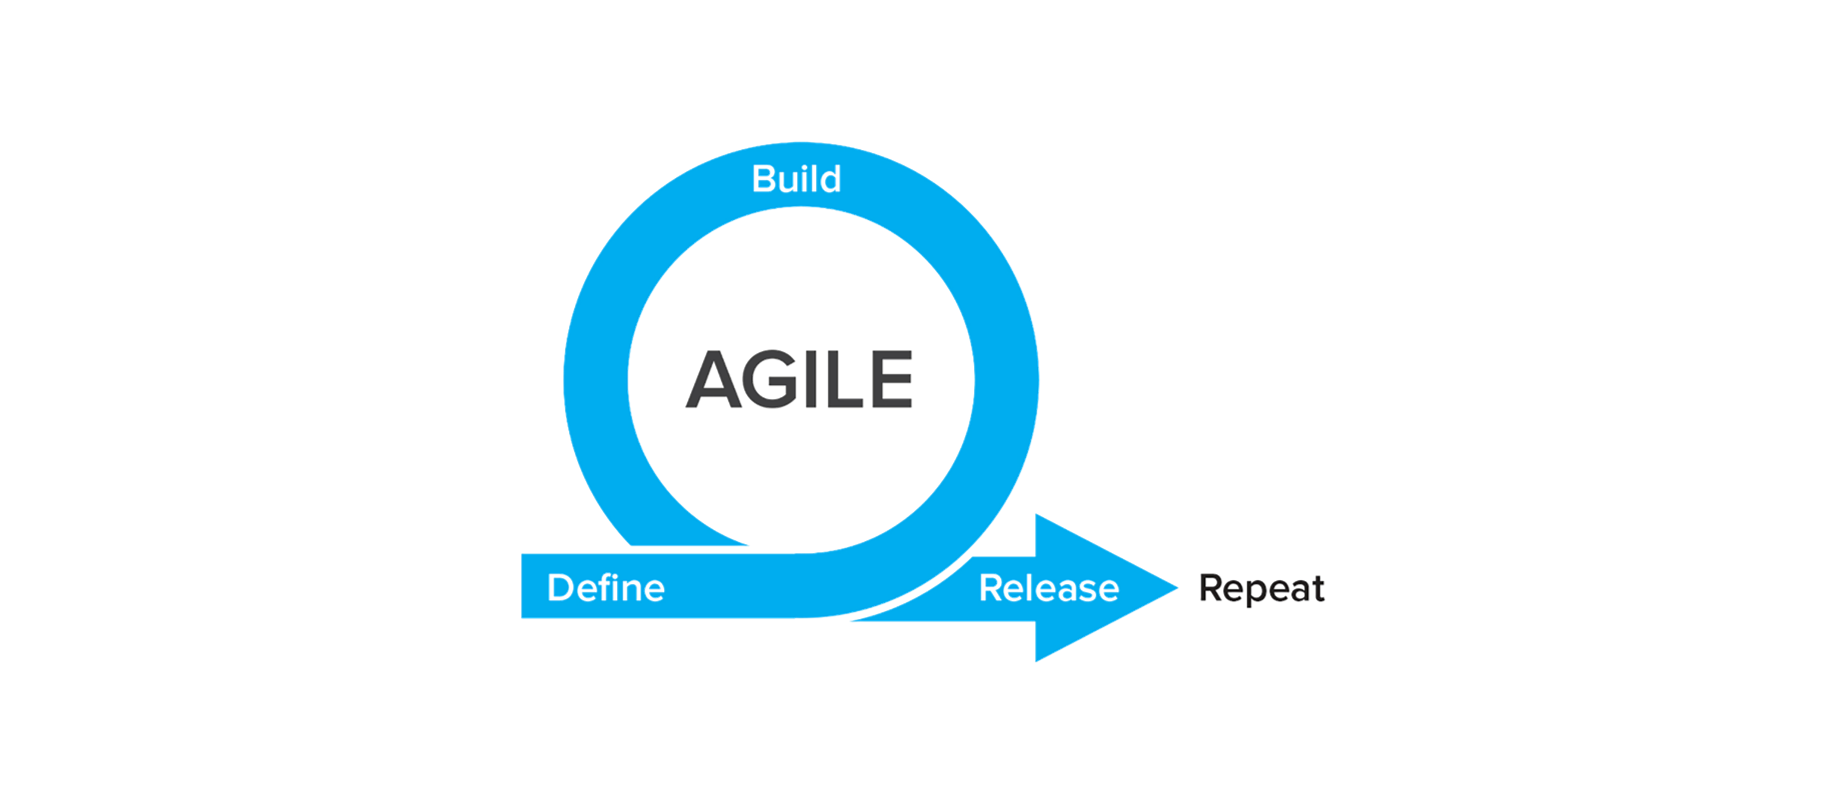 With its focus on rapid iteration, agile can help teams to uncover and solve complex problems, regardless of where they sit in the business.